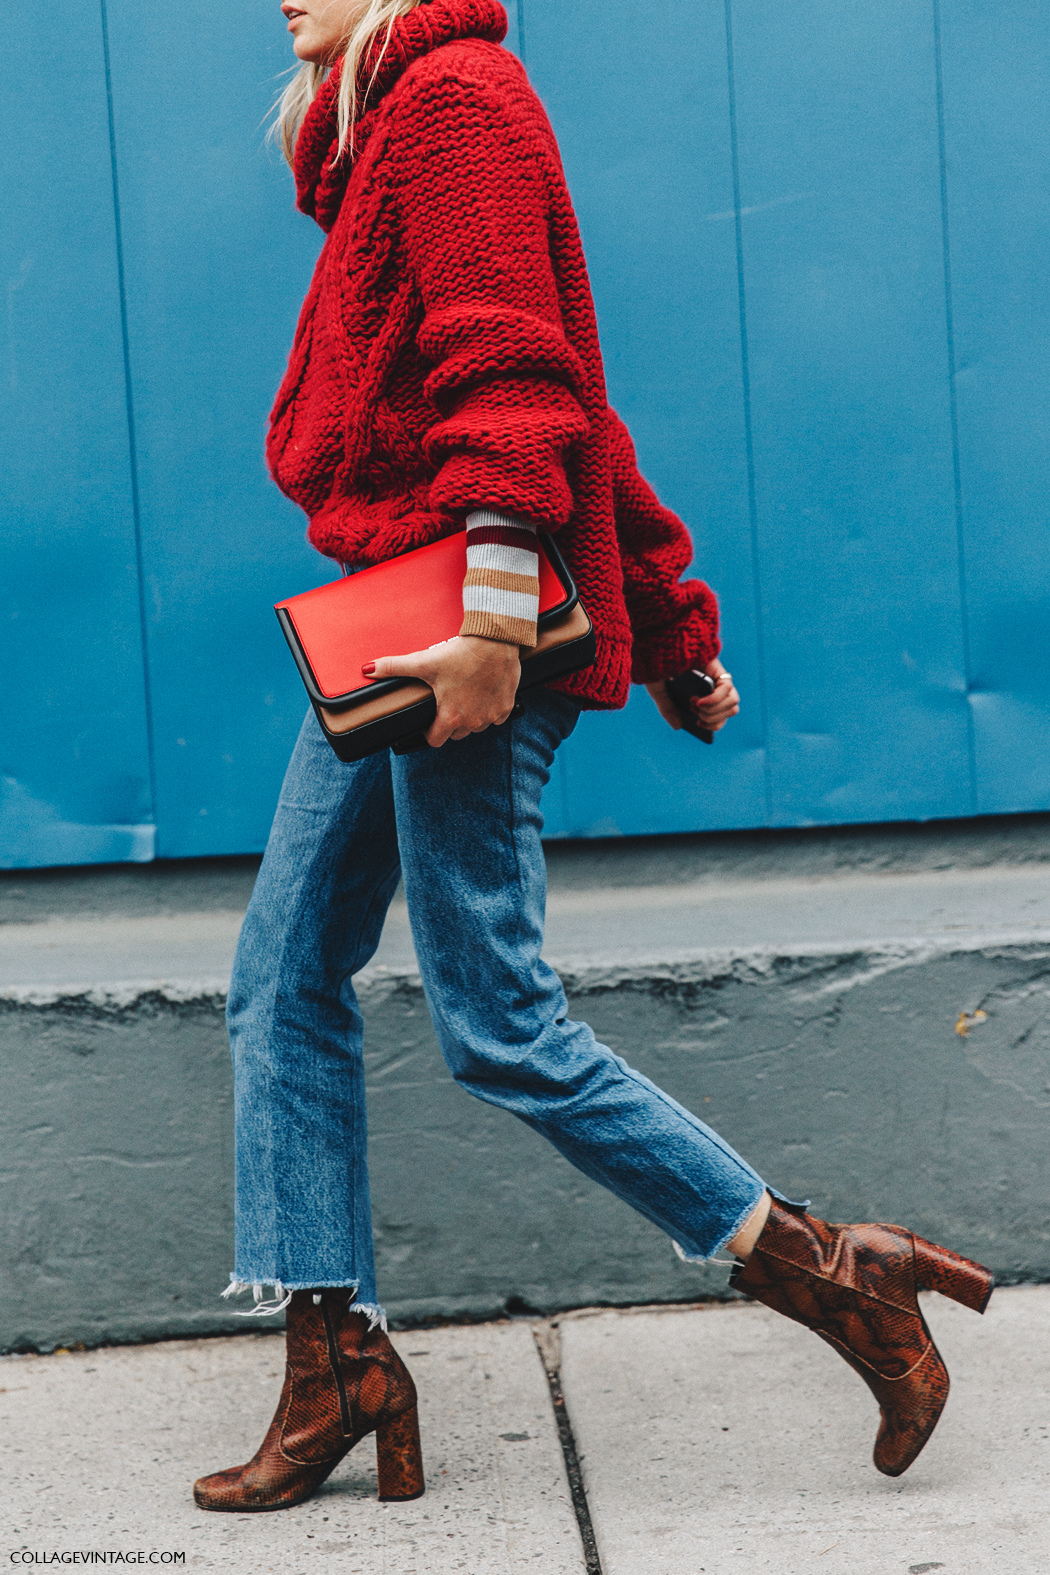 NYFW-New_York_Fashion_Week-Fall_Winter-17-Street_Style-Camille_Charriere-Vetements_Jeans-Red_Sweater-Beanie-Snake_Boots-5